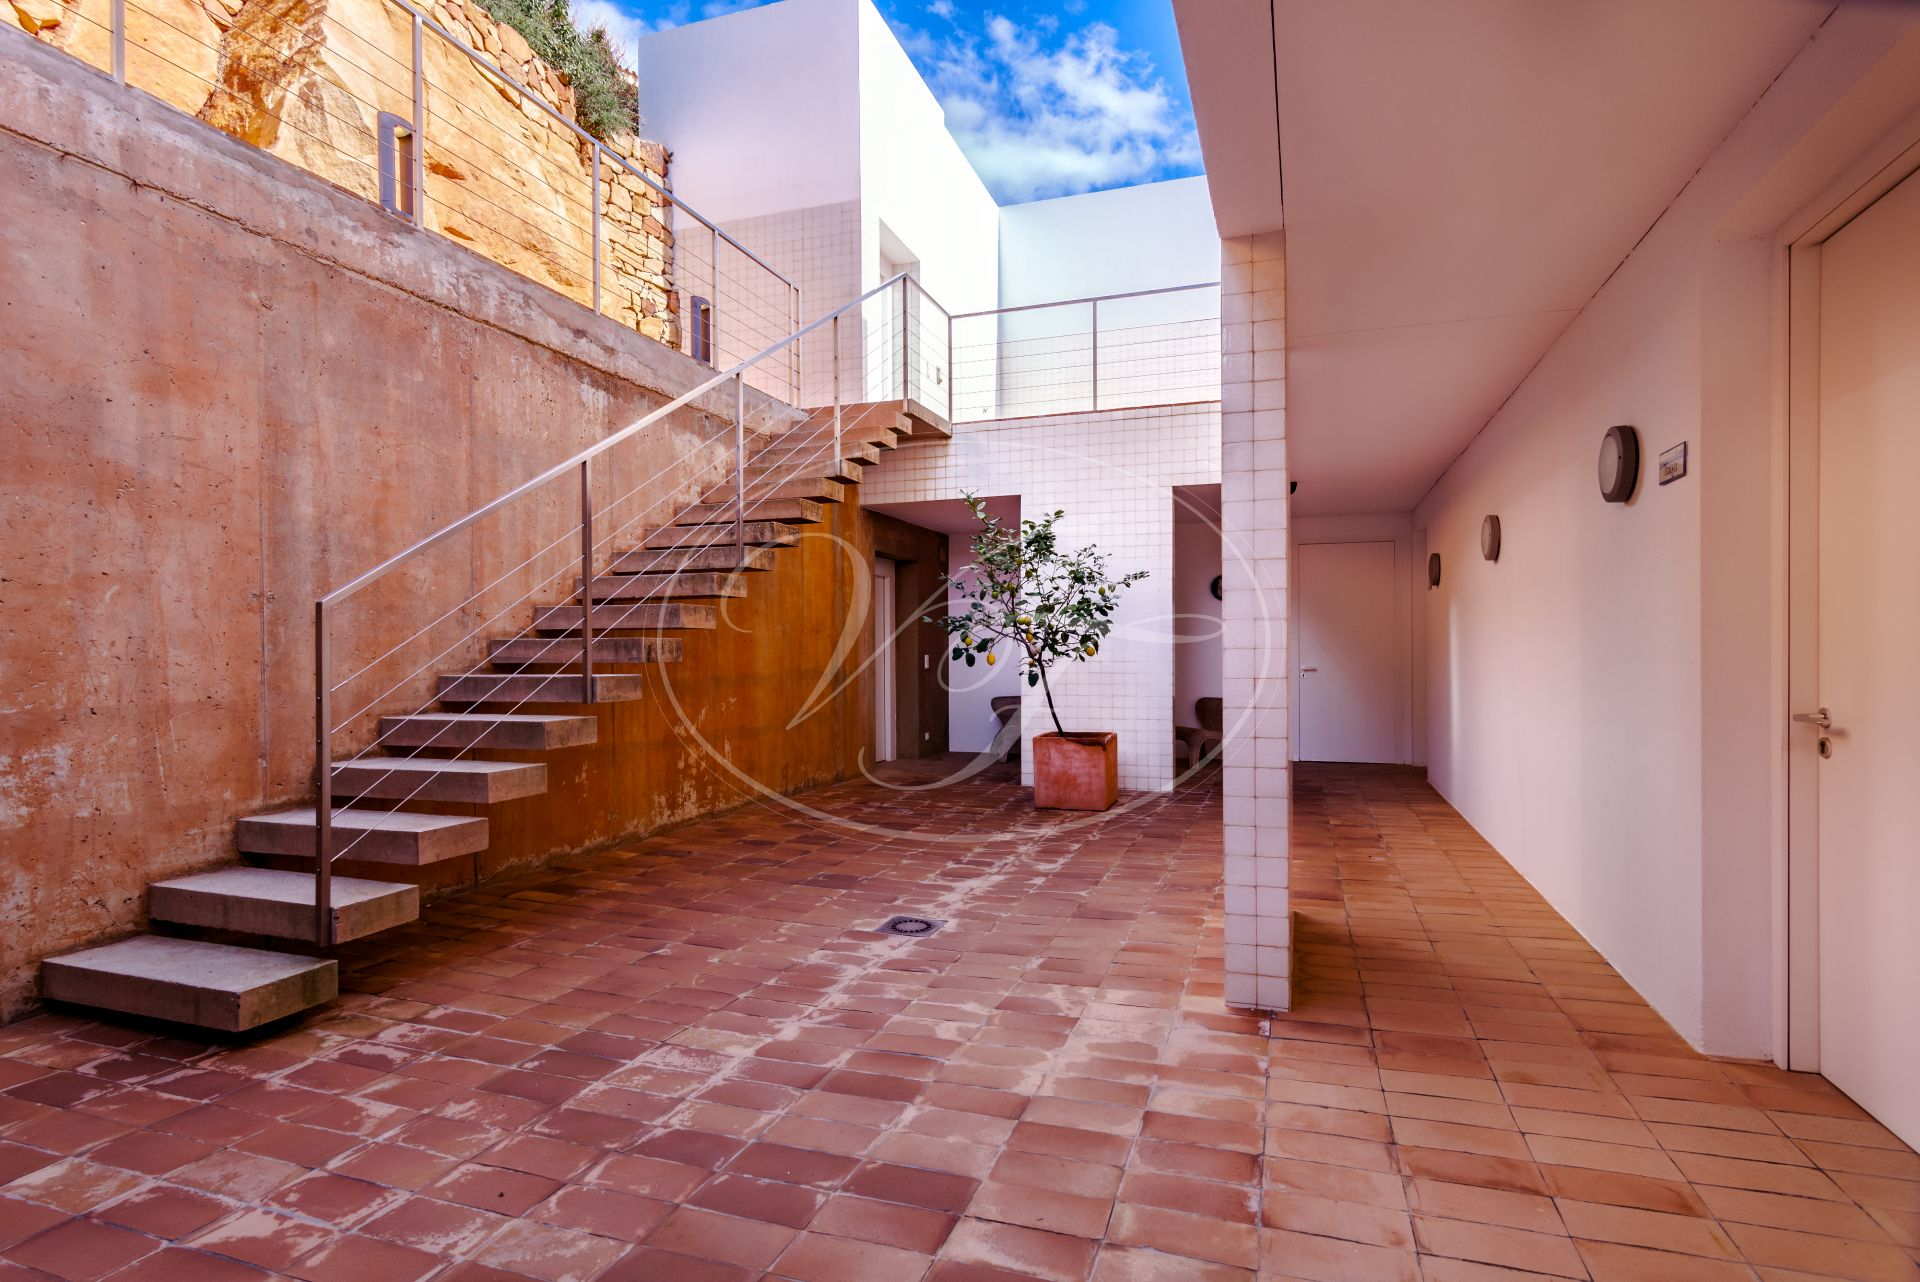 Villa for sale in Zahara de los Atunes